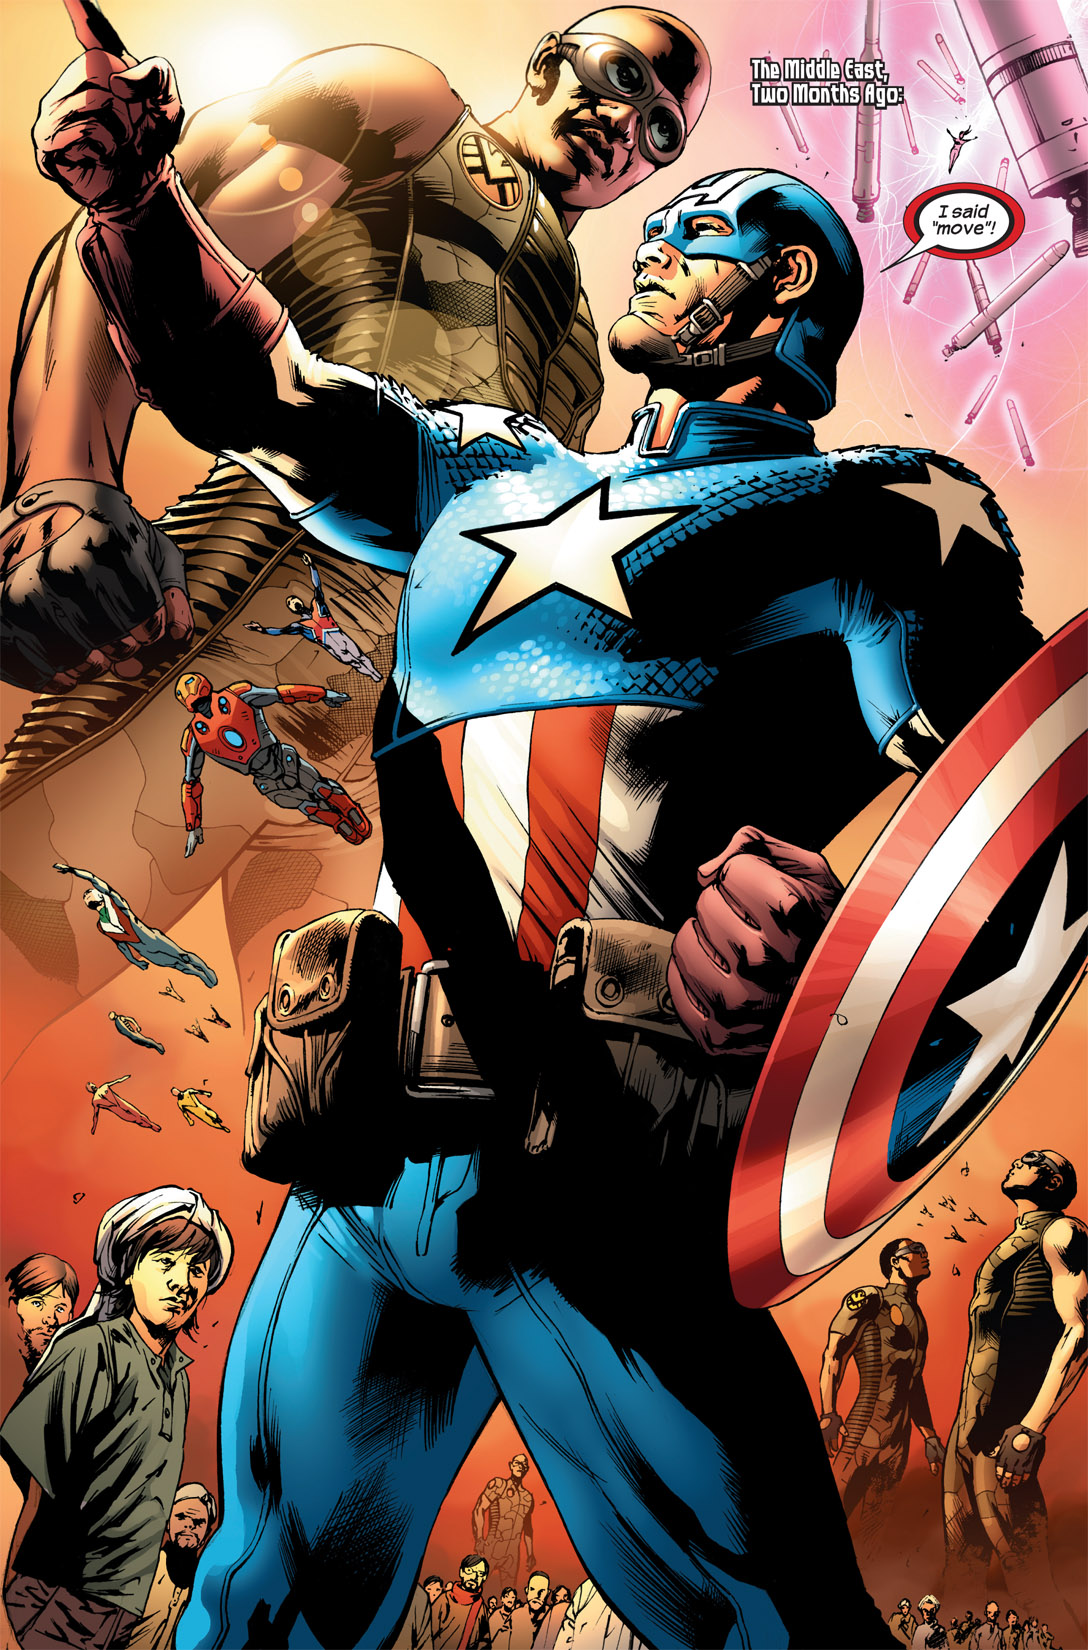 Related image Marvel characters, Anime, Avengers assemble